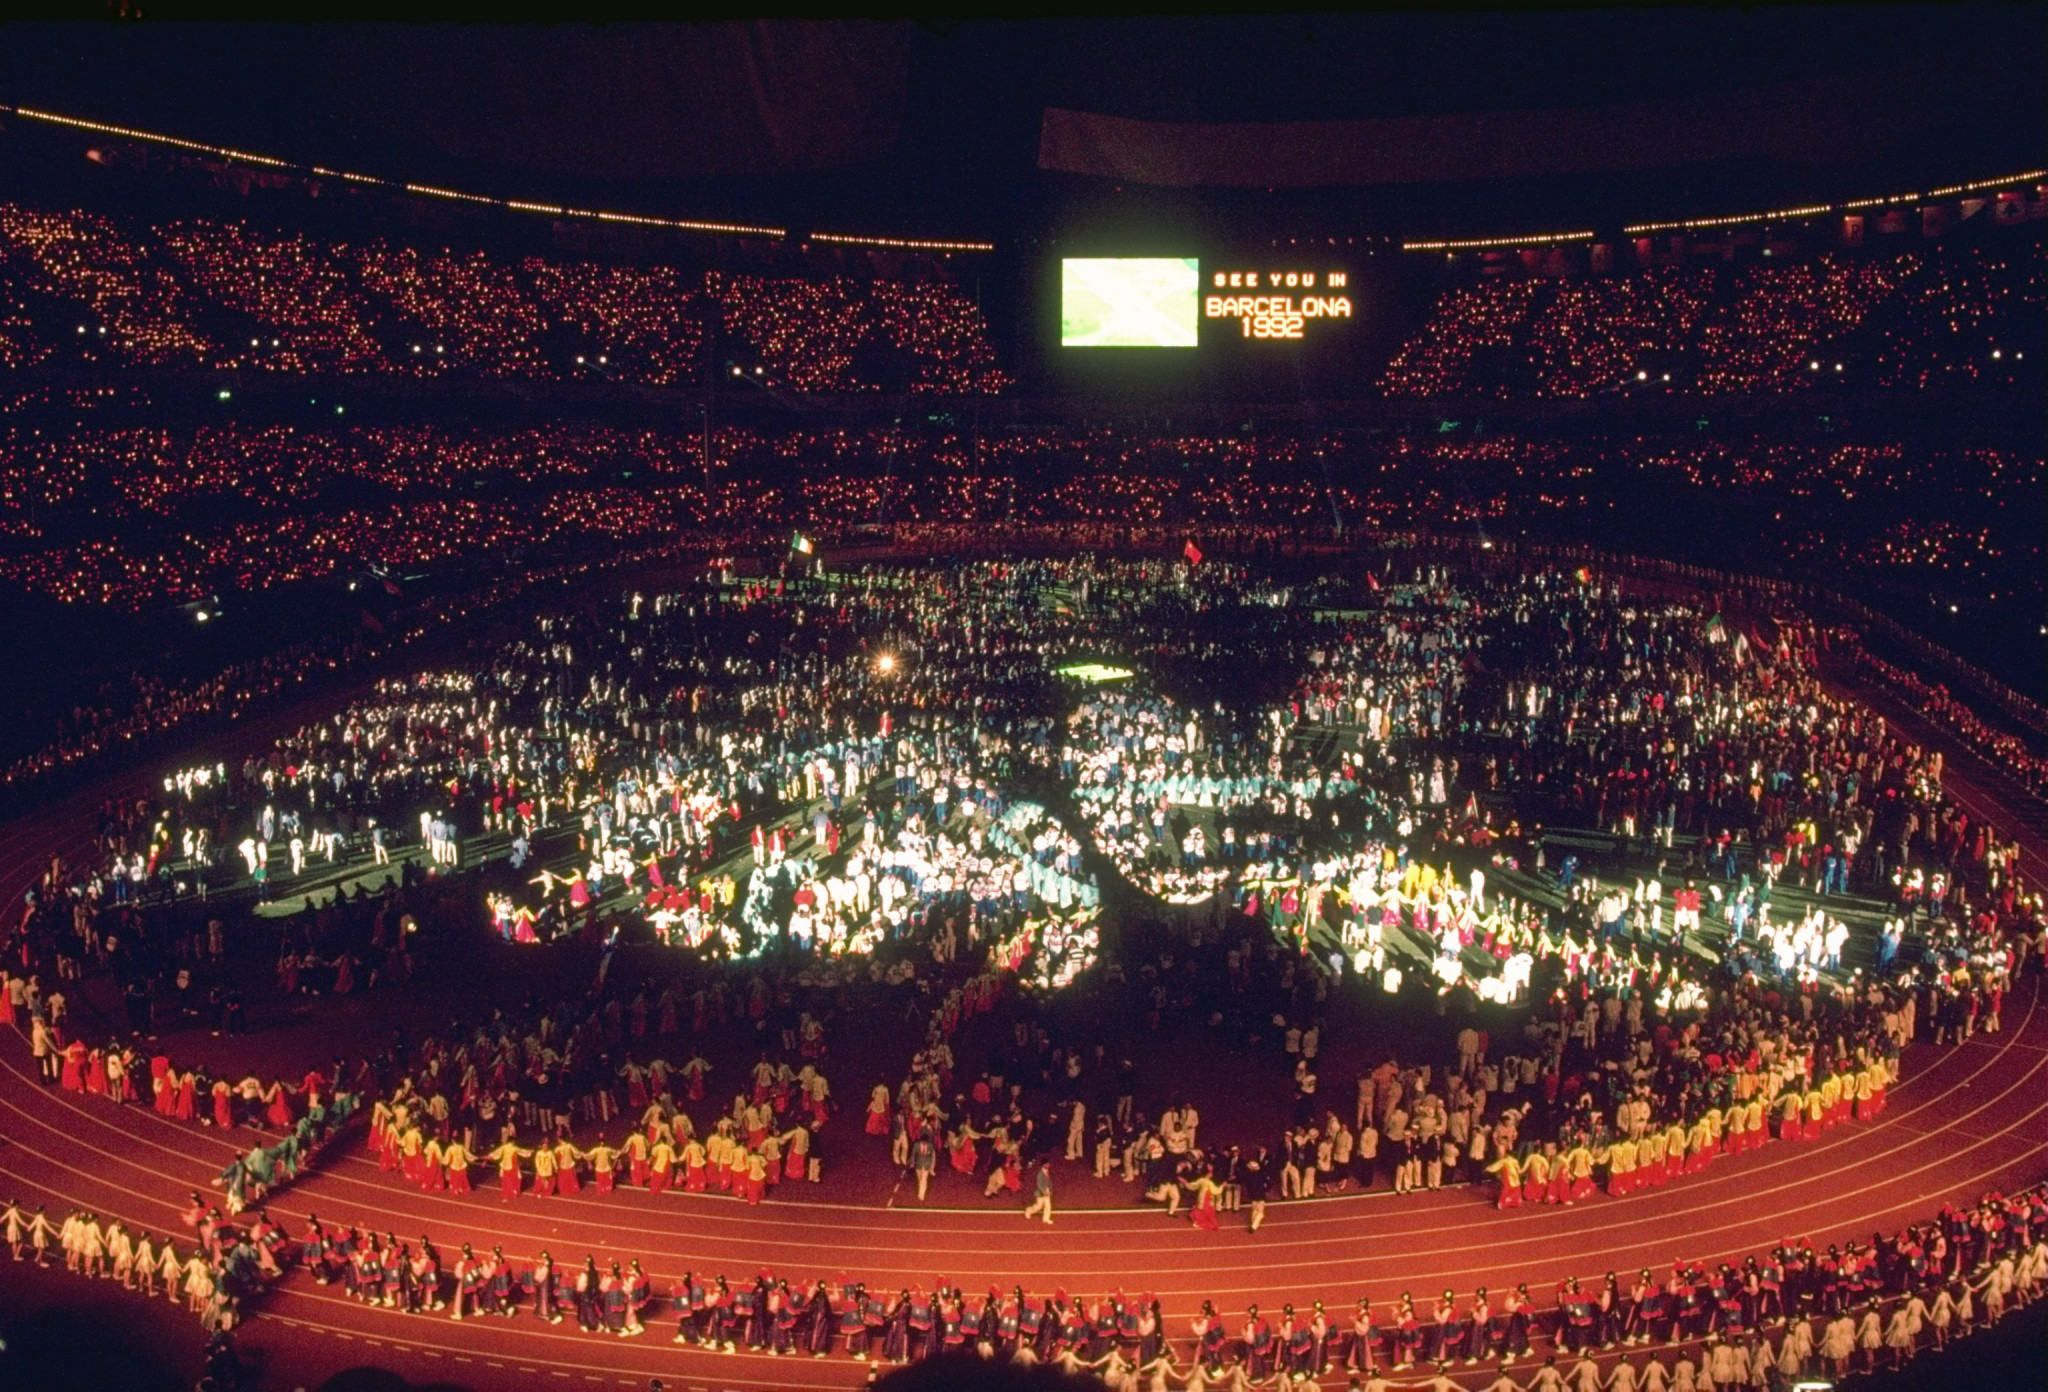 The Korea question also dominated Olympic circles prior to and during Seoul 1988 ©Getty Images